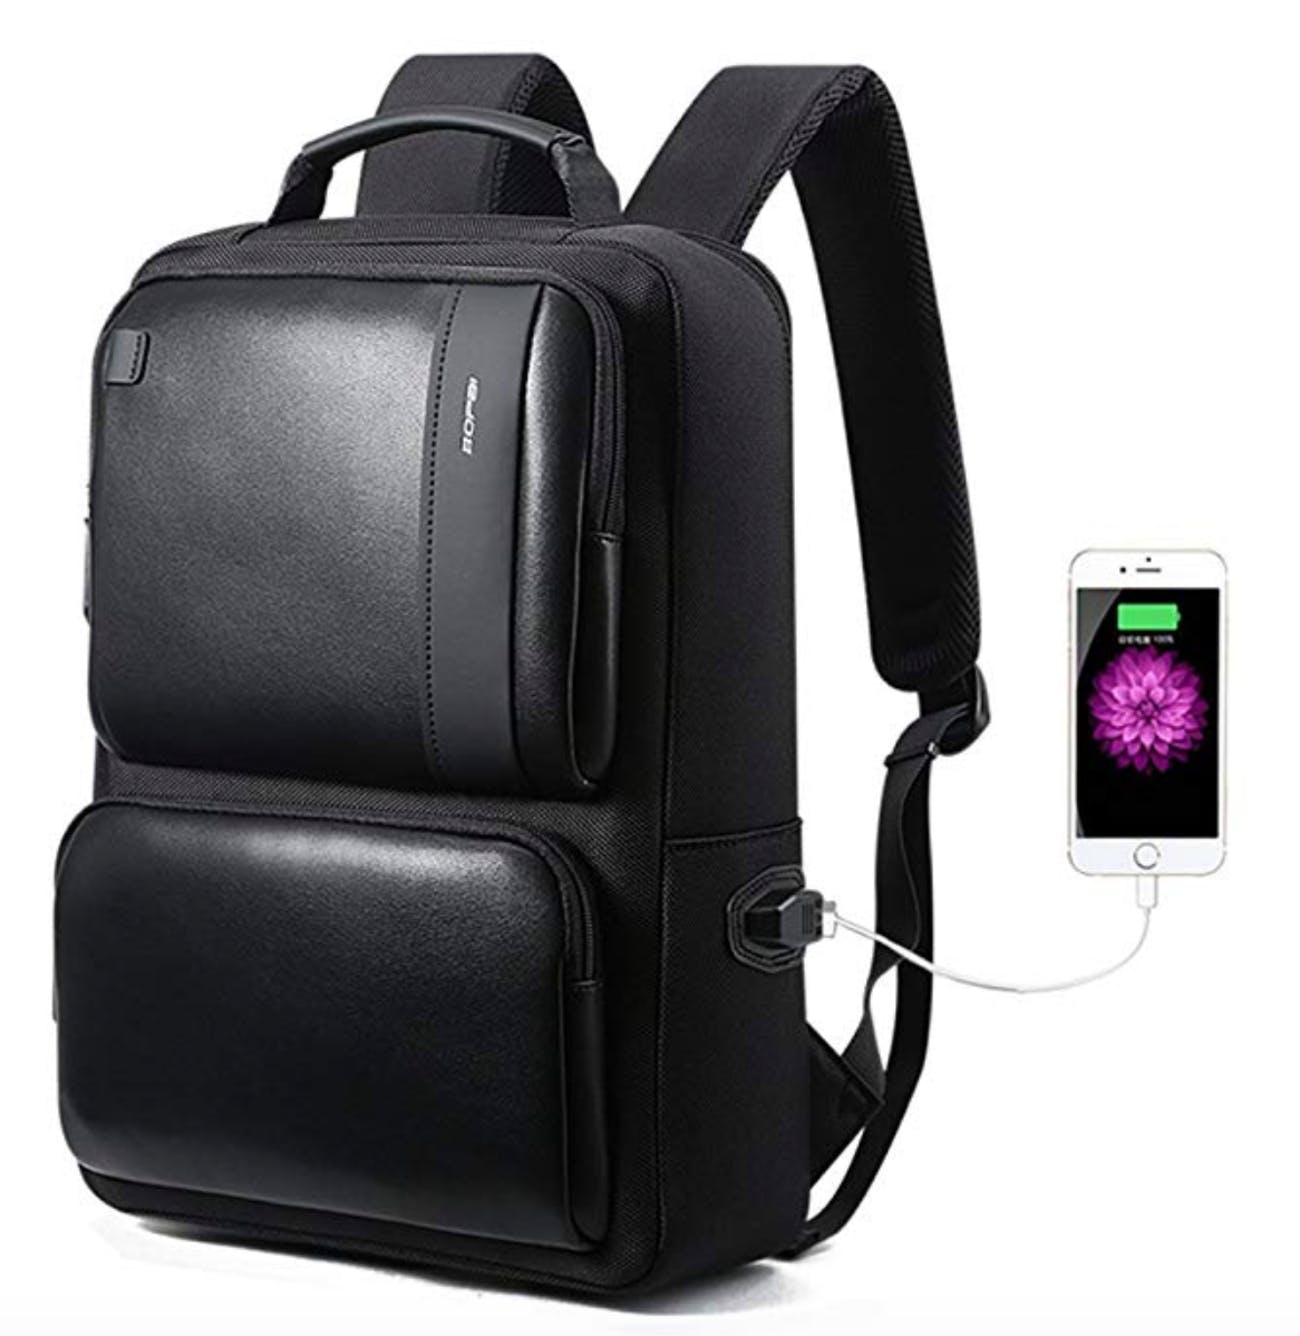 business, technology, travel, meetings, style, airport, baggage, backpack